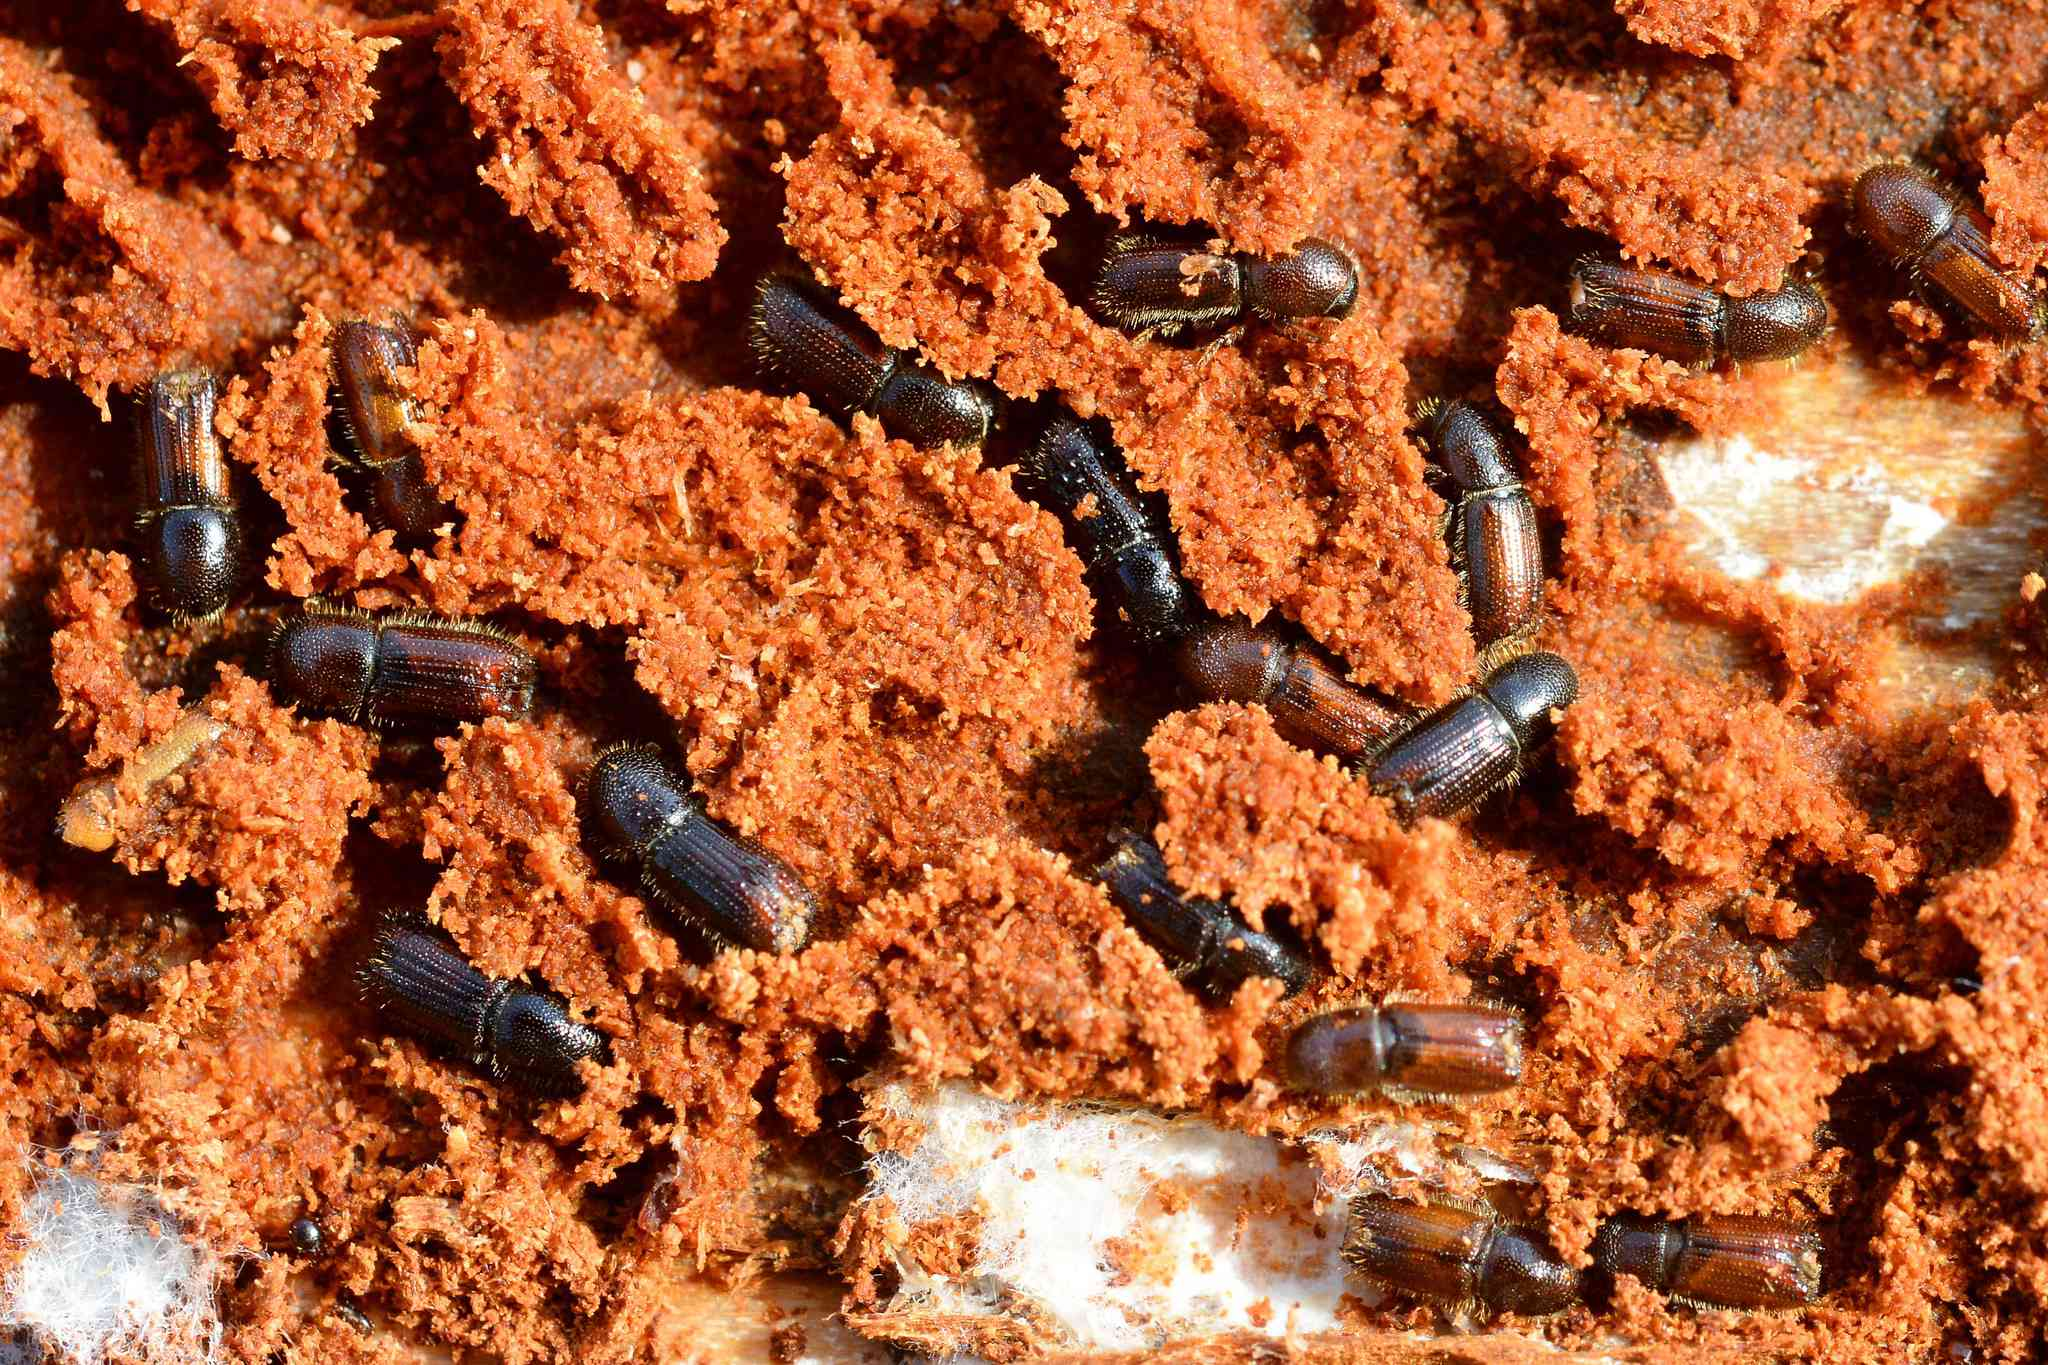 lesser larch bark beetles and their galleries under the bark of a black pine tree